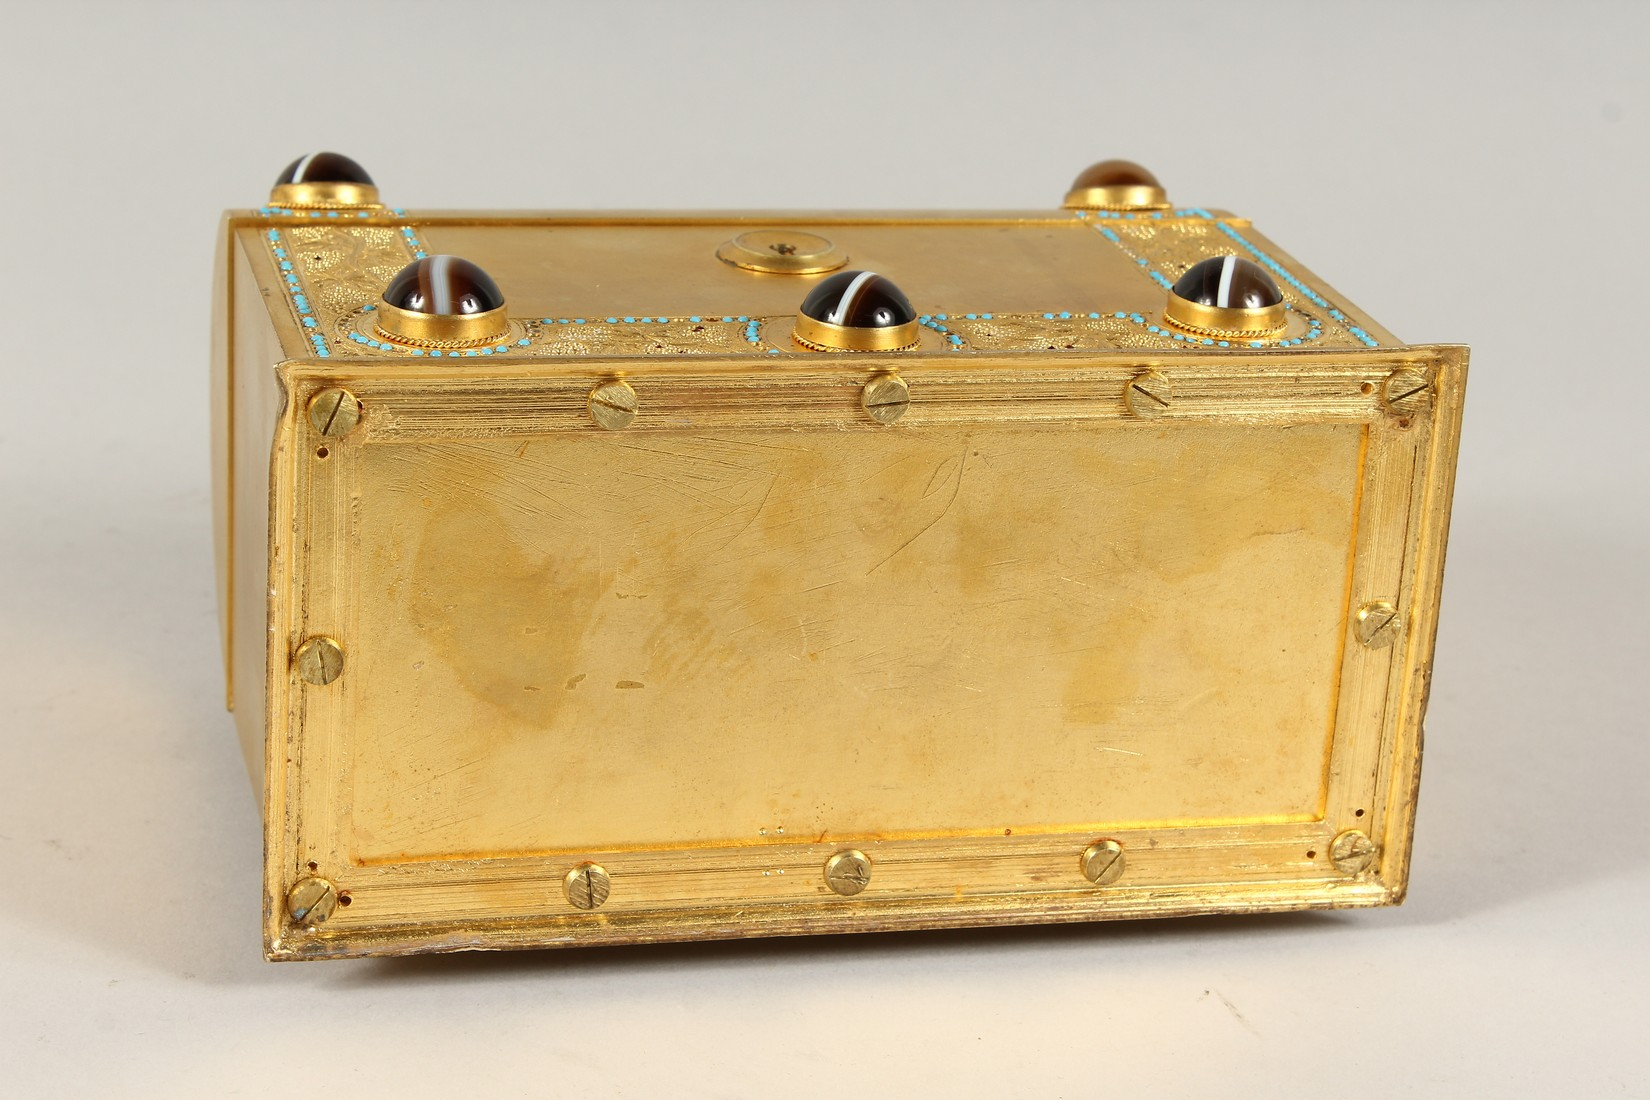 A GOOD 19TH CENTURY FRENCH BRASS DOMED SHAPED CASKET, inset with agate pieces opening to reveal a - Image 5 of 5